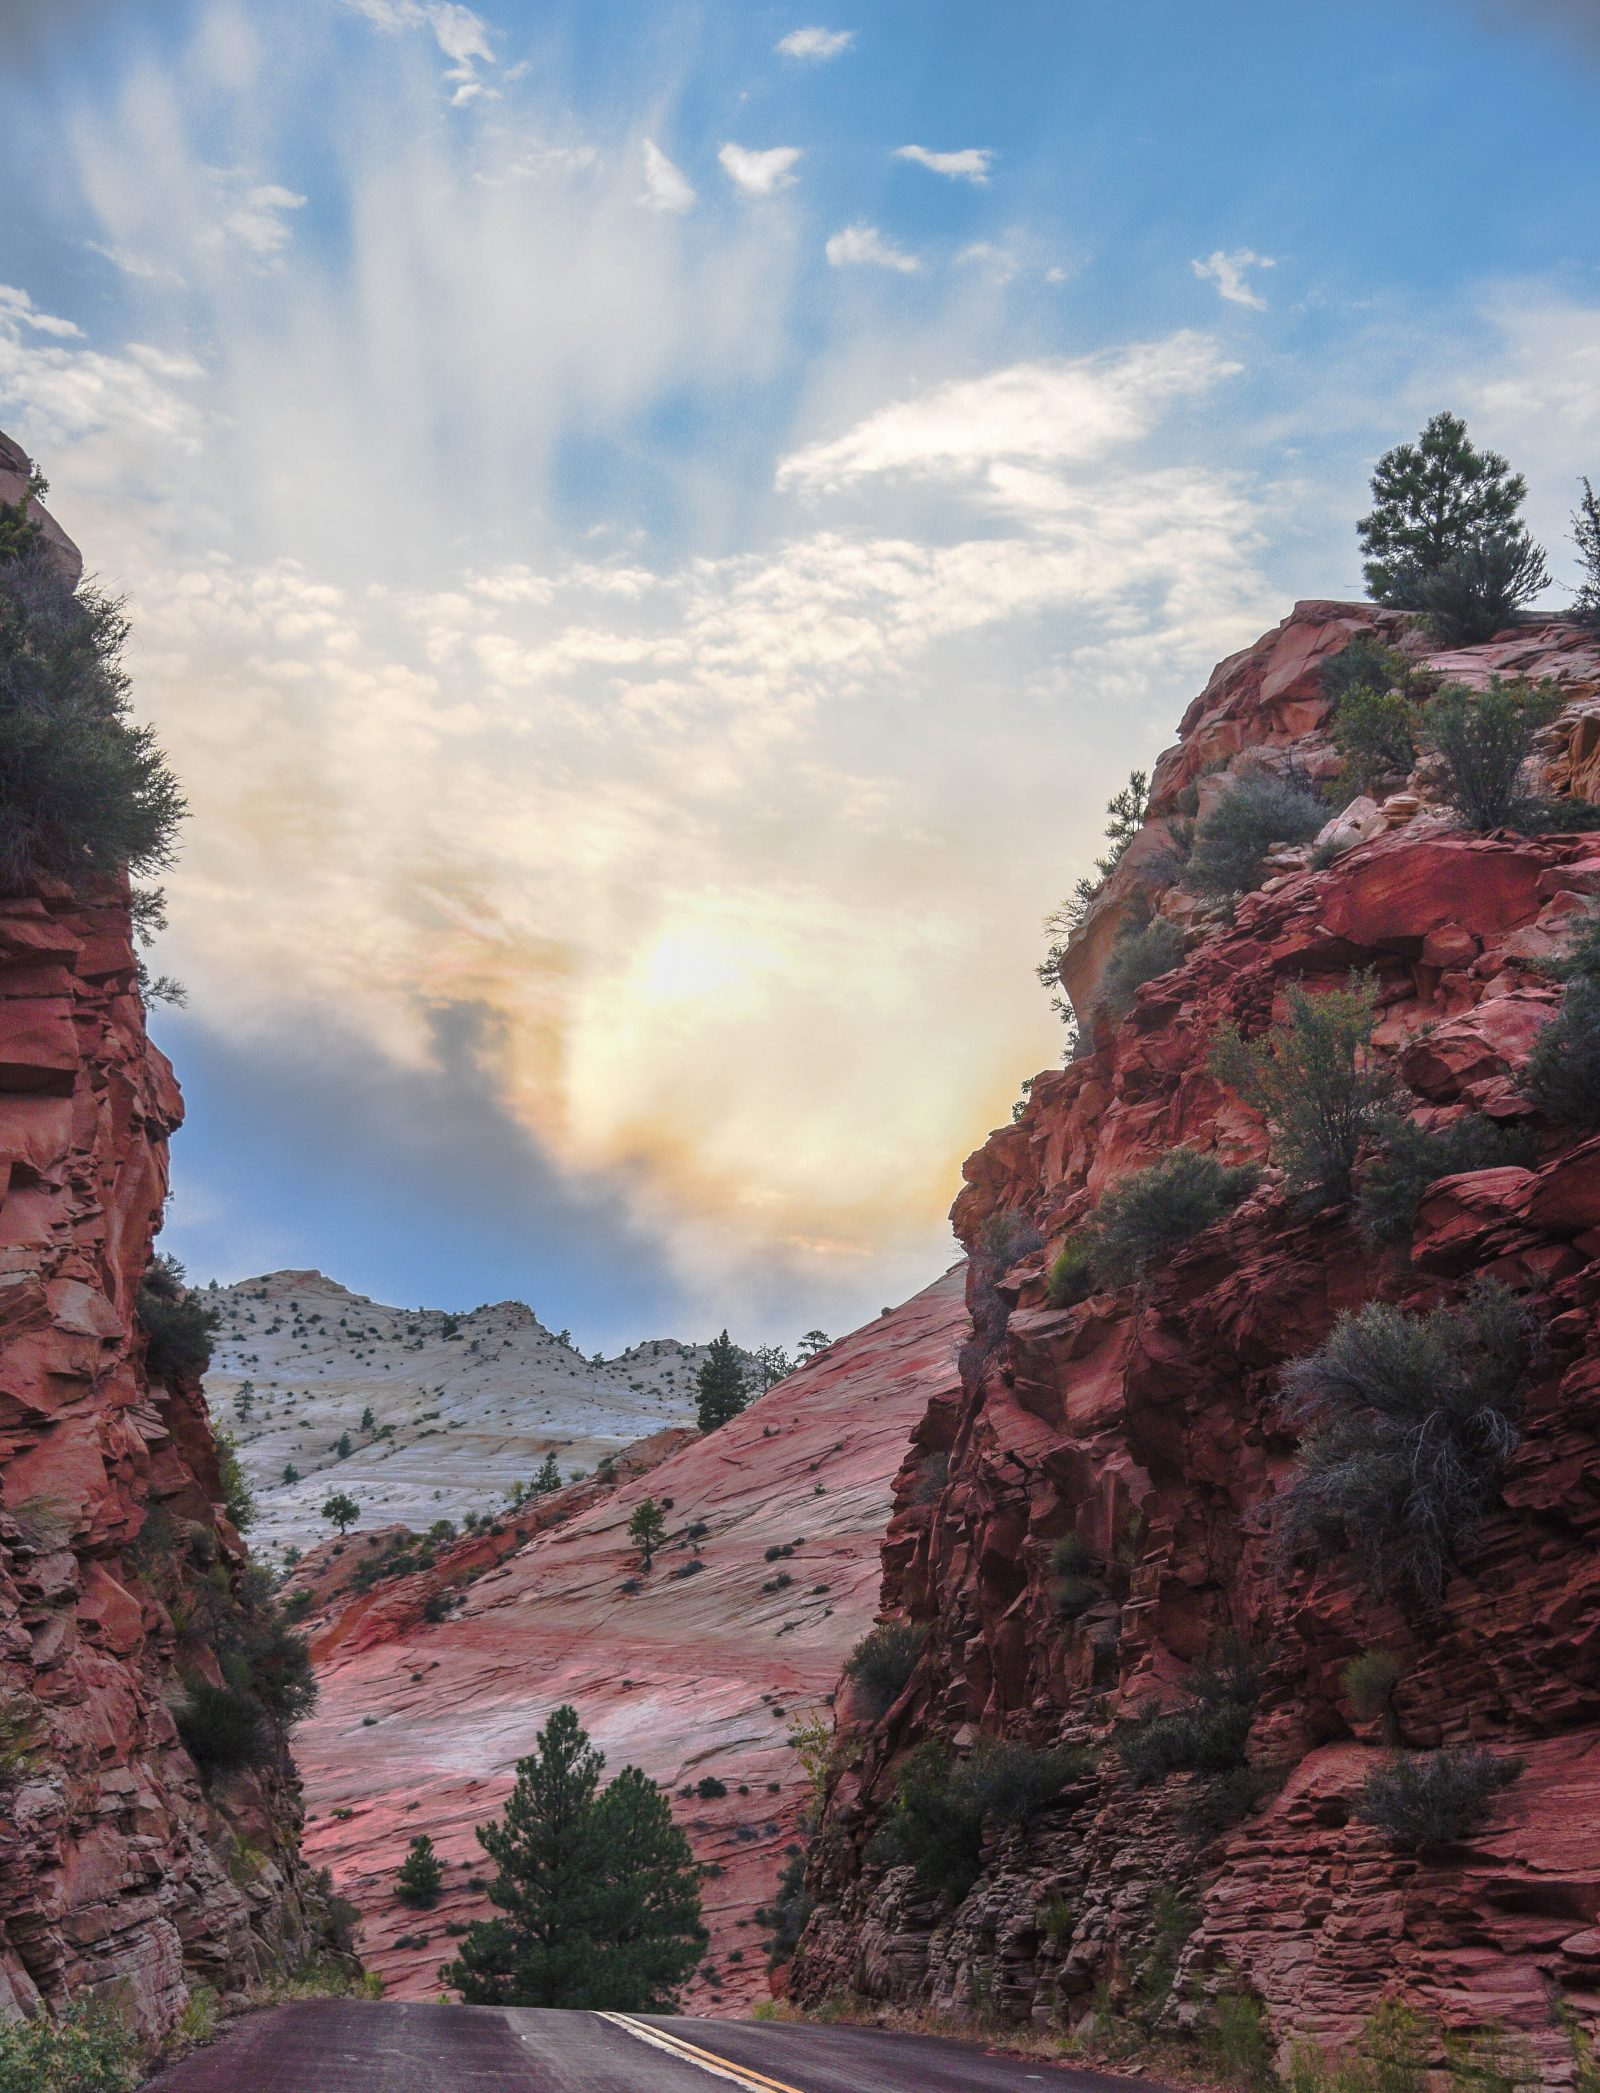 The Road through Zion